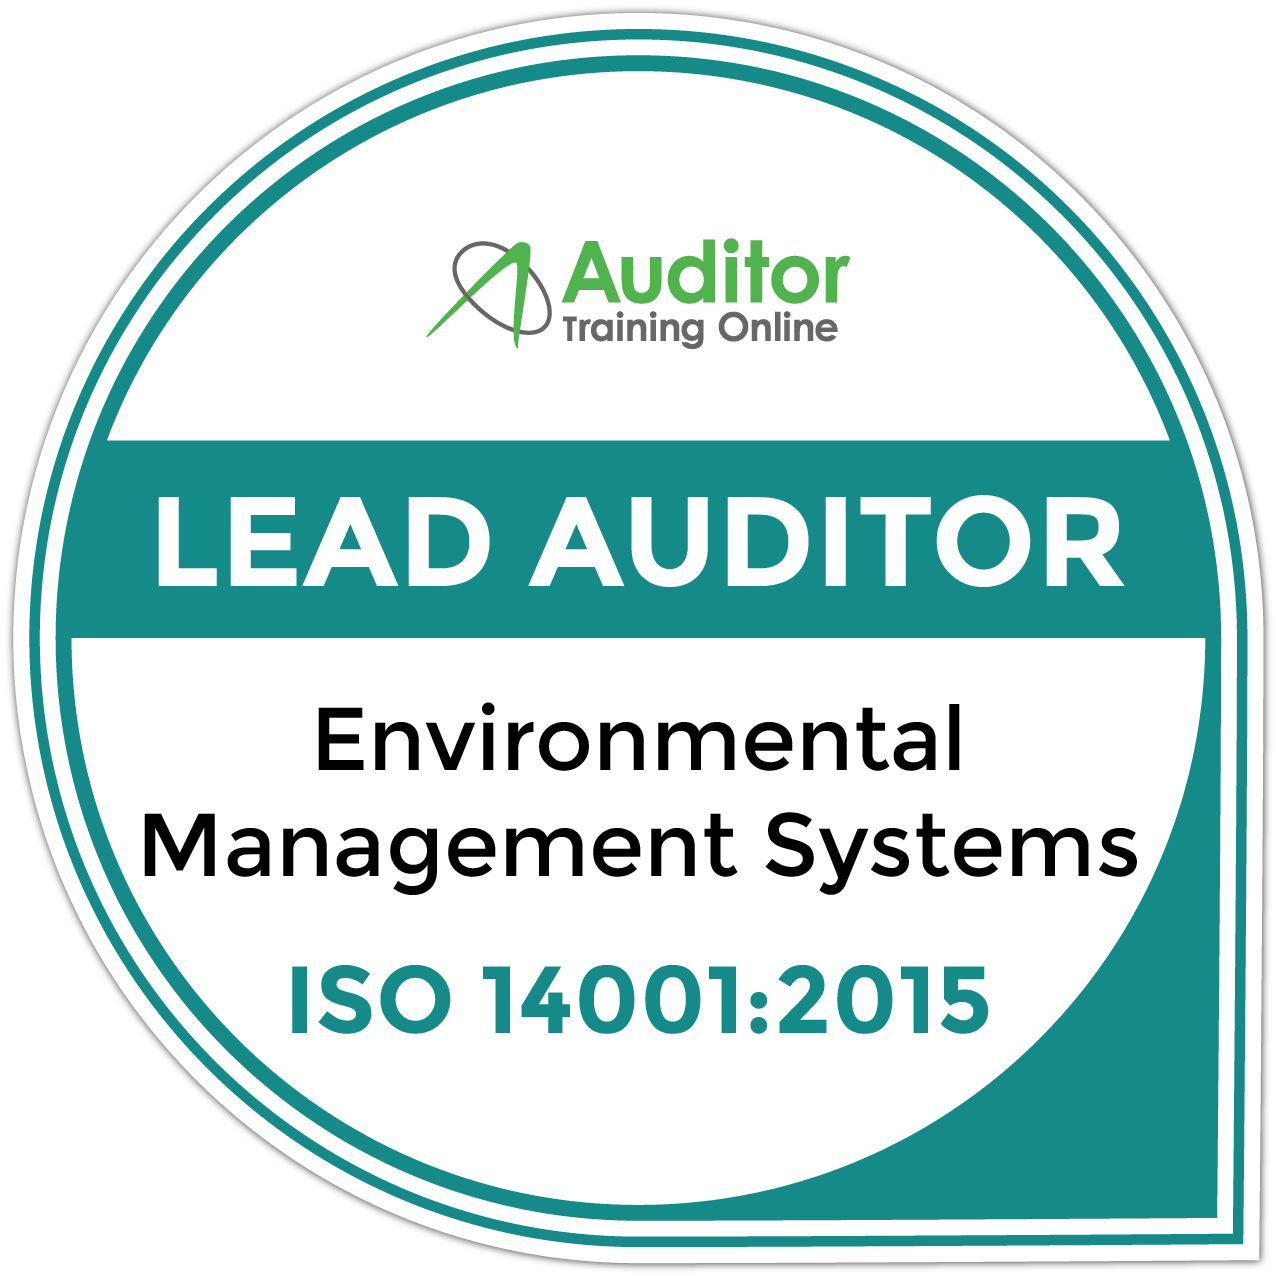 Lead Auditor Environmental Management Systems